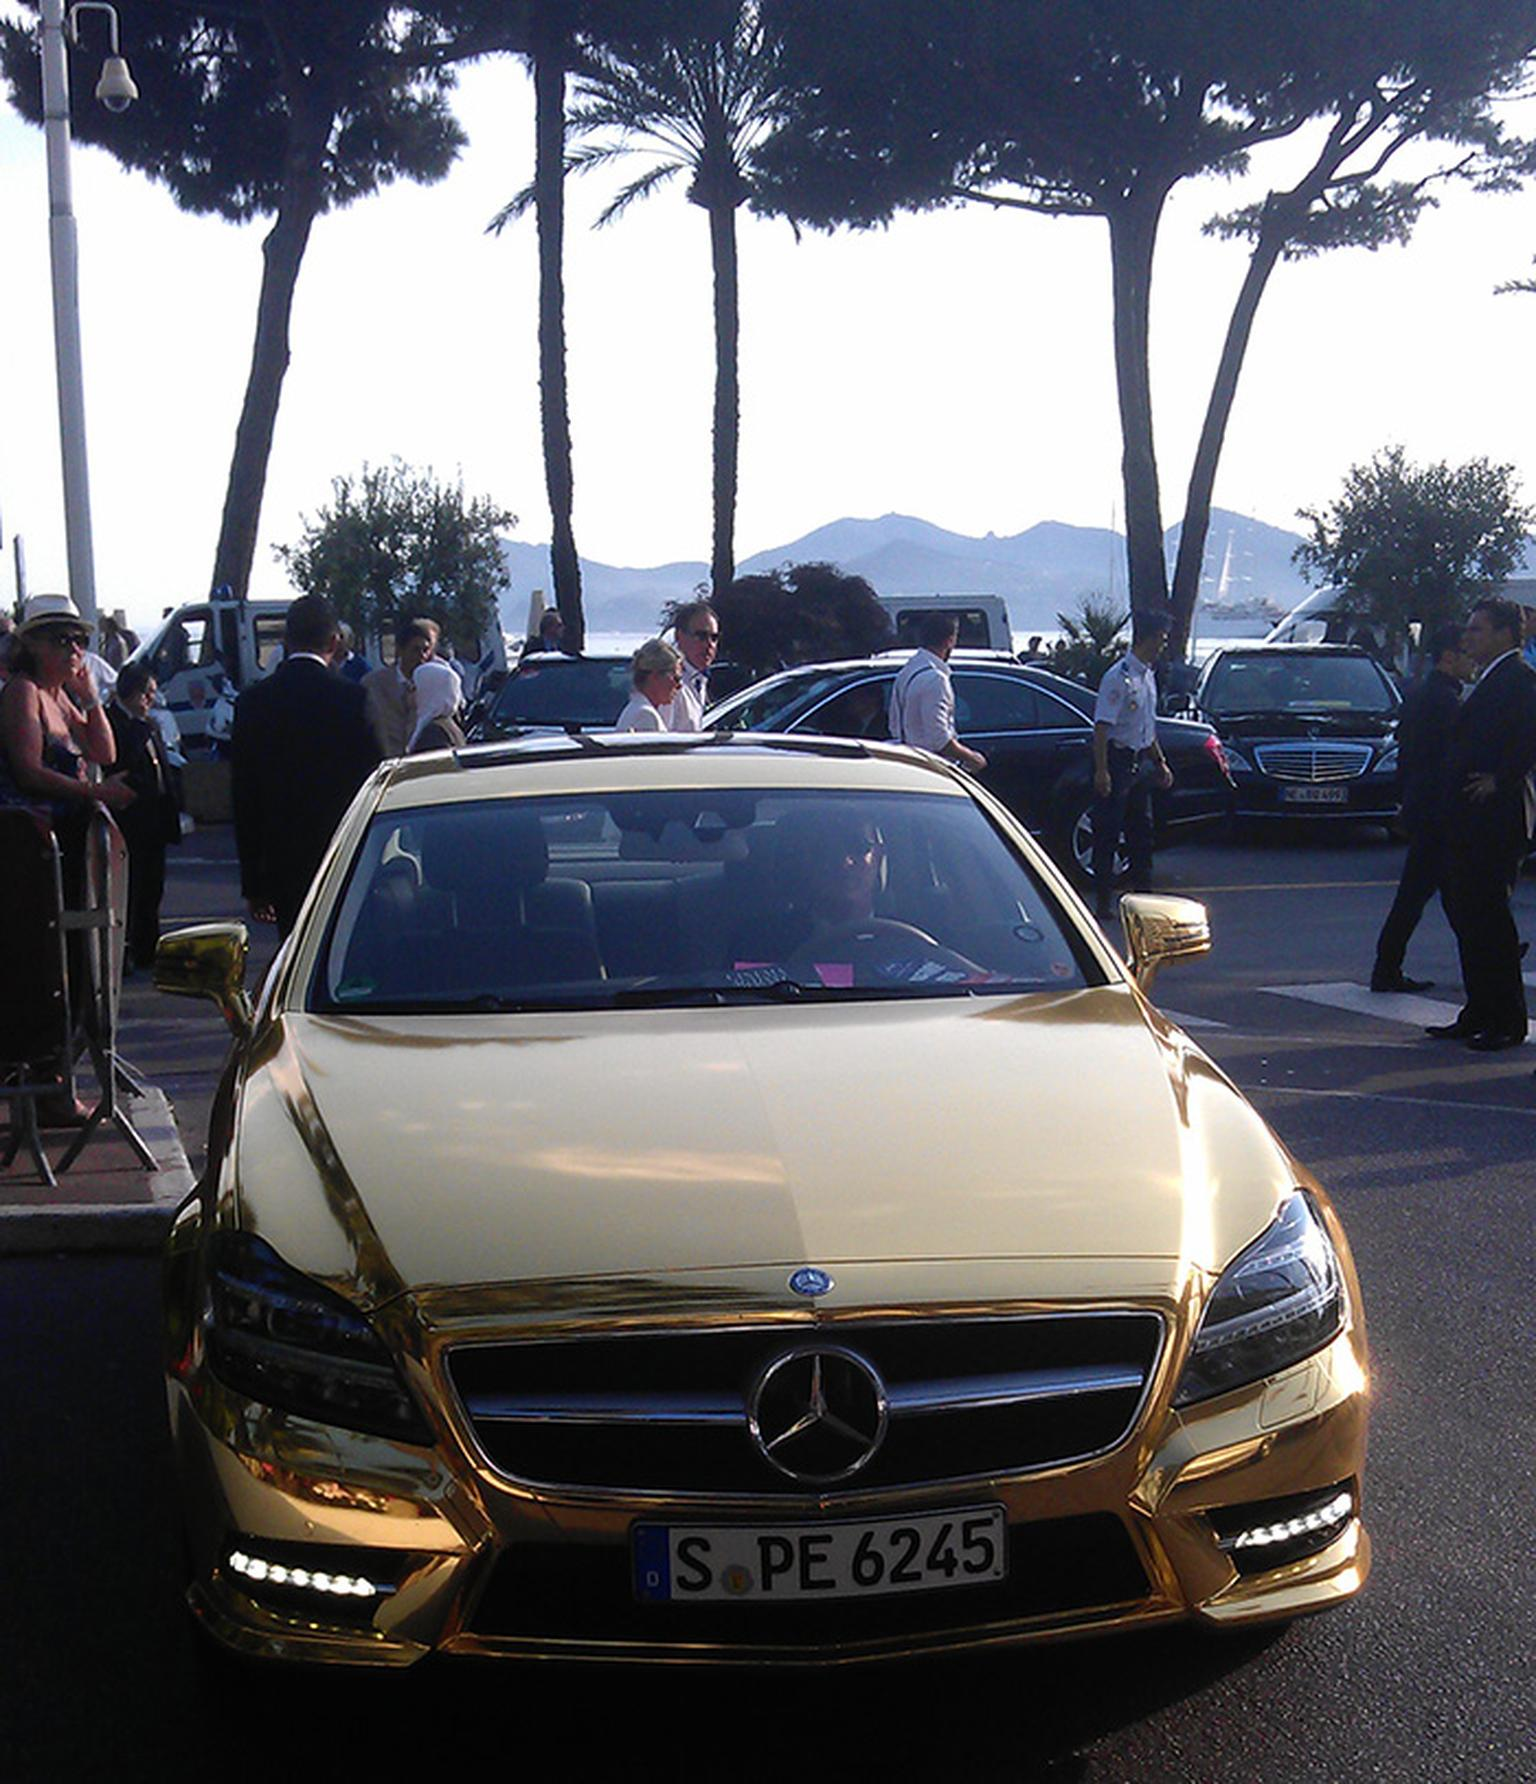 Only-in-Cannes-a-gold-Merc.jpg